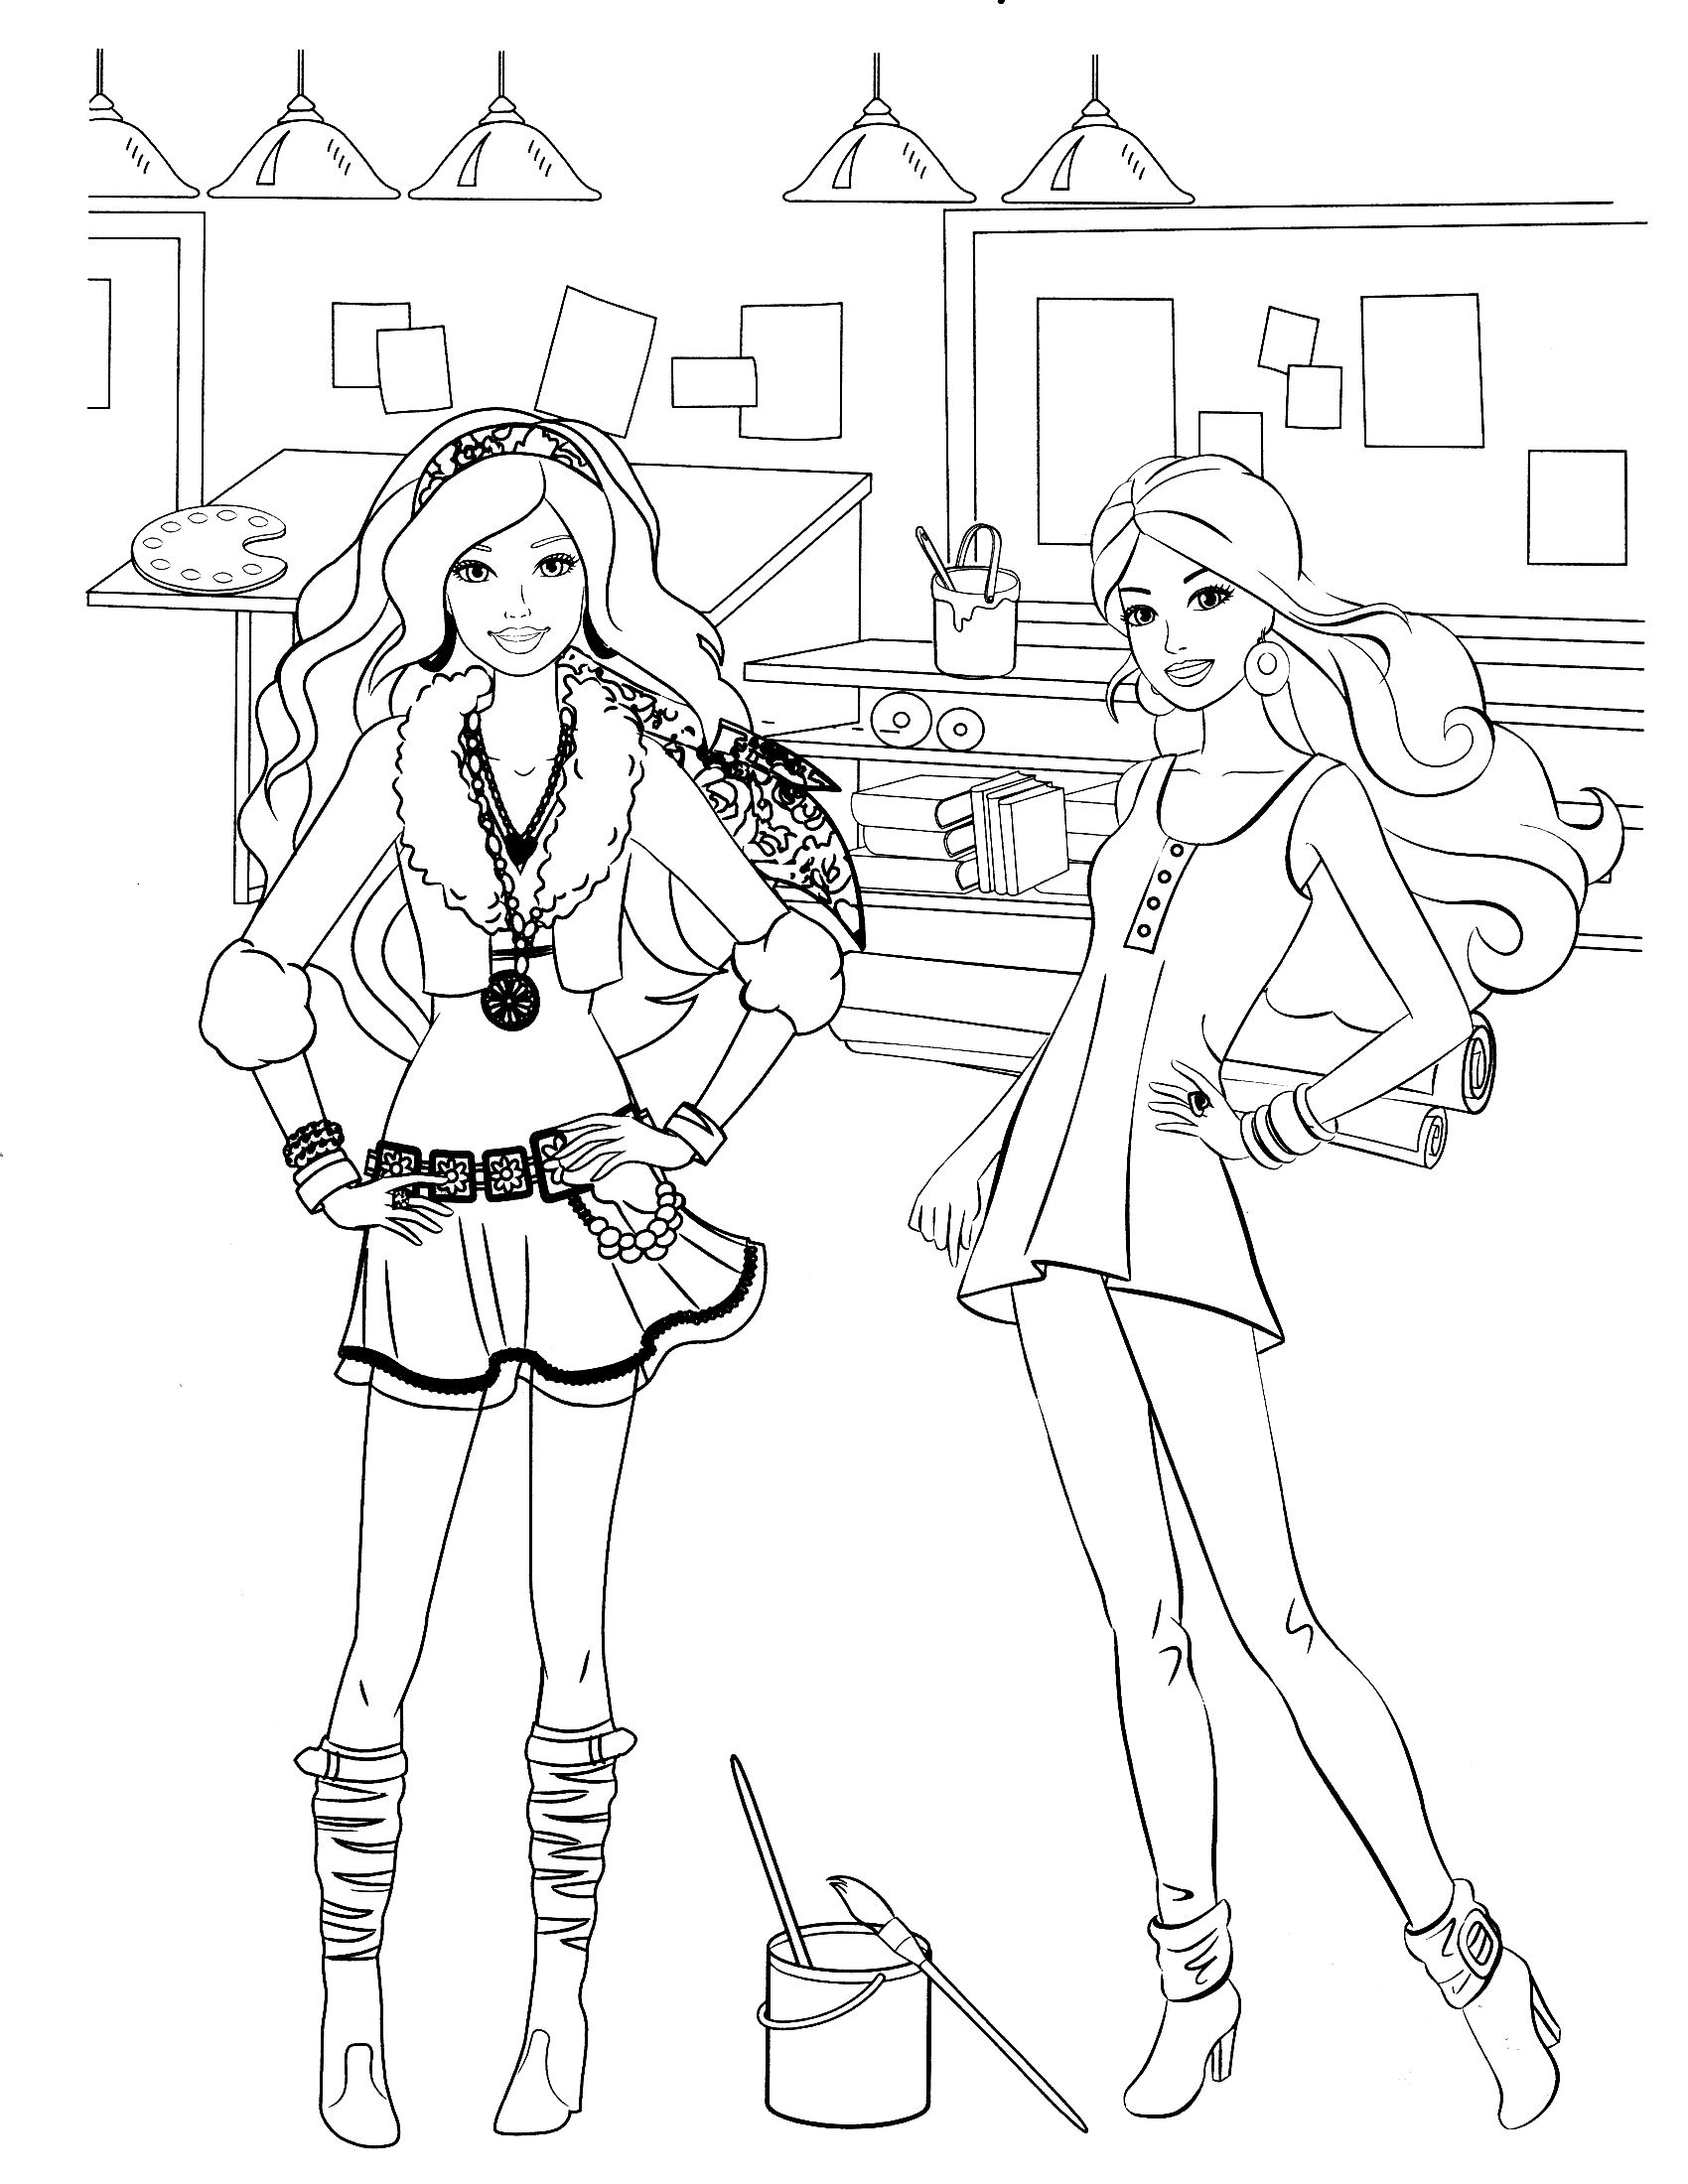 Barbie 86 Barbie Coloring Pages Cartoon Coloring Pages Barbie Coloring